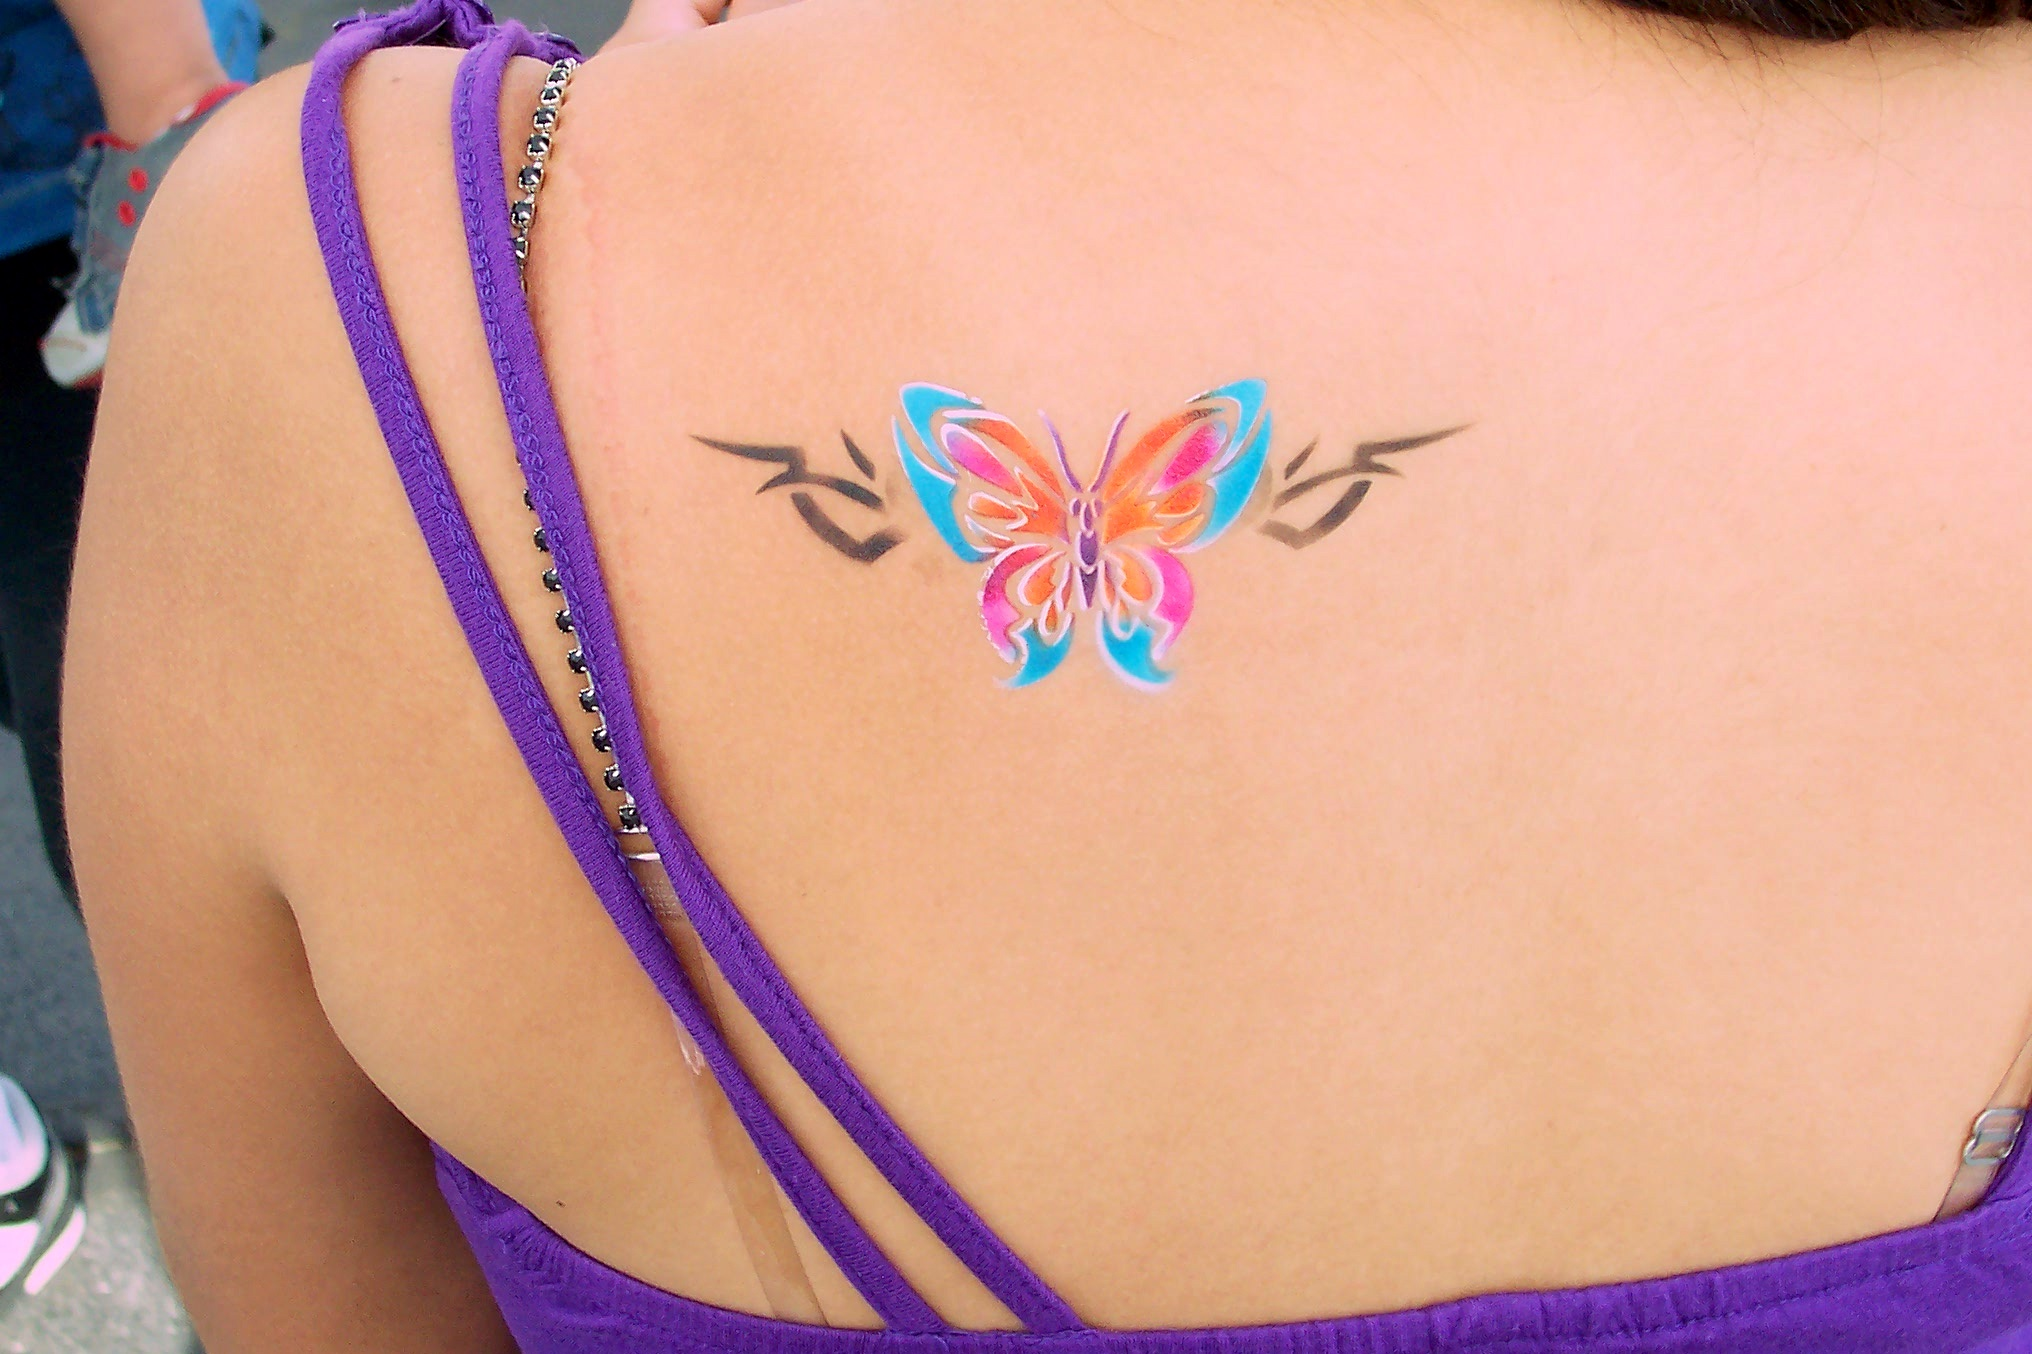 itattooz-airbrush-tattoo-on-back